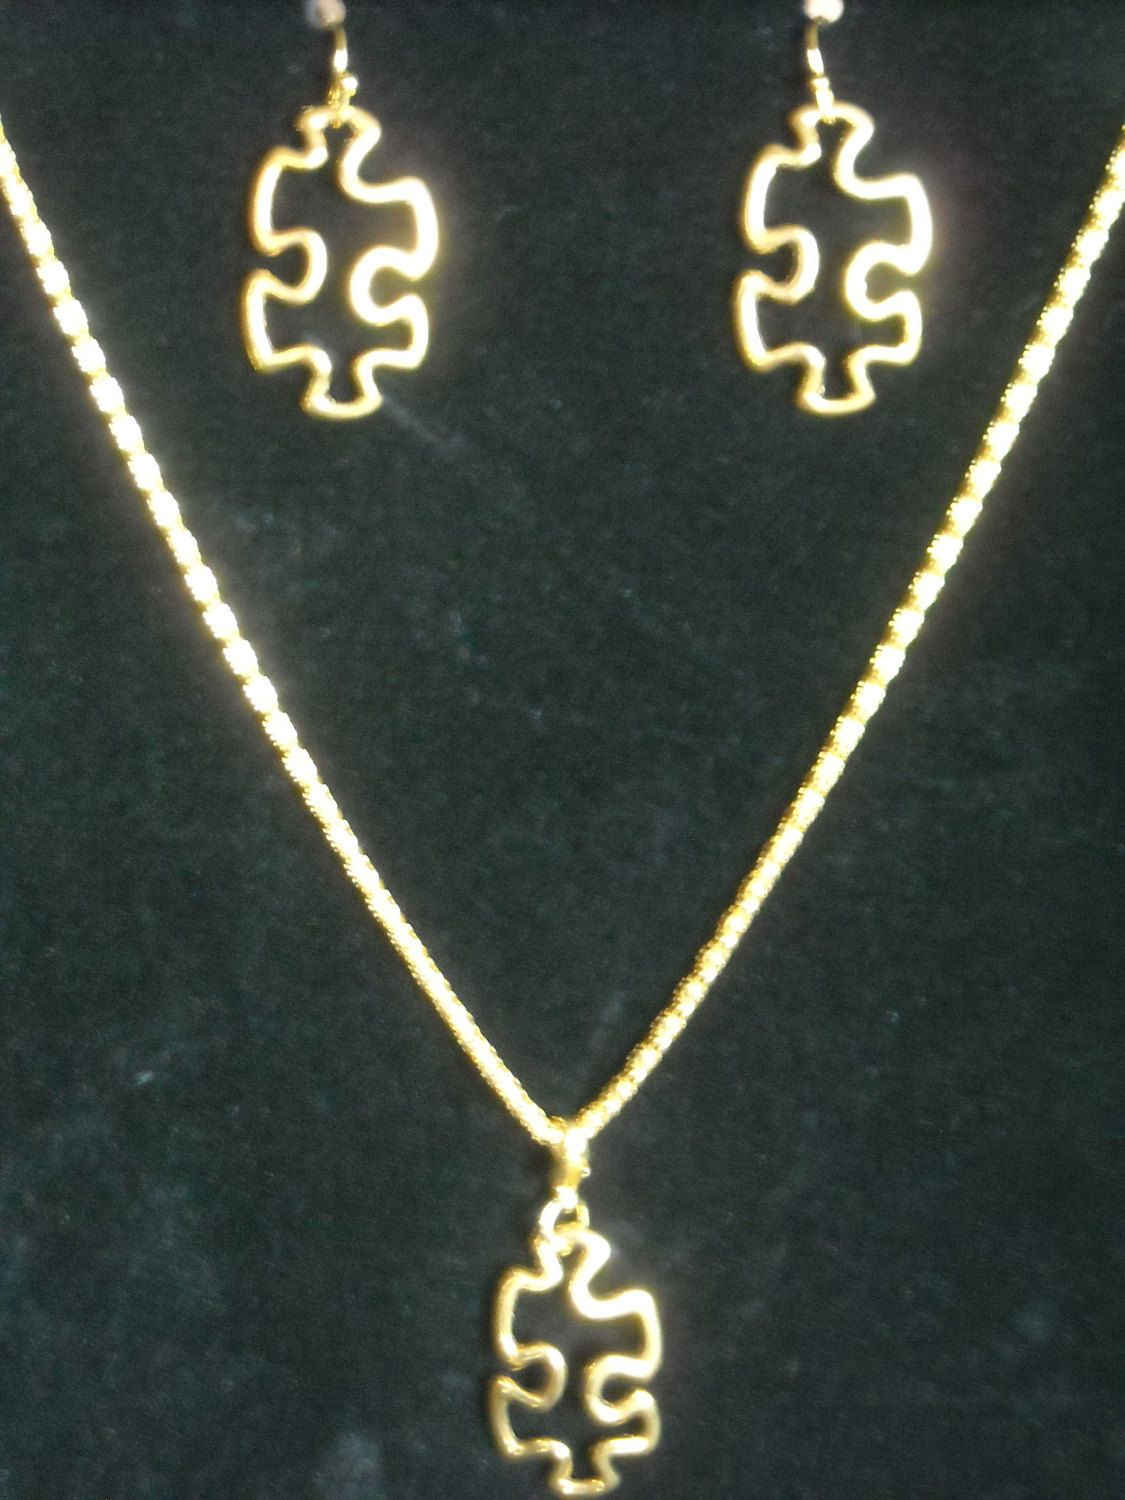 Set new autism awareness earrings u necklace set puzzle or light